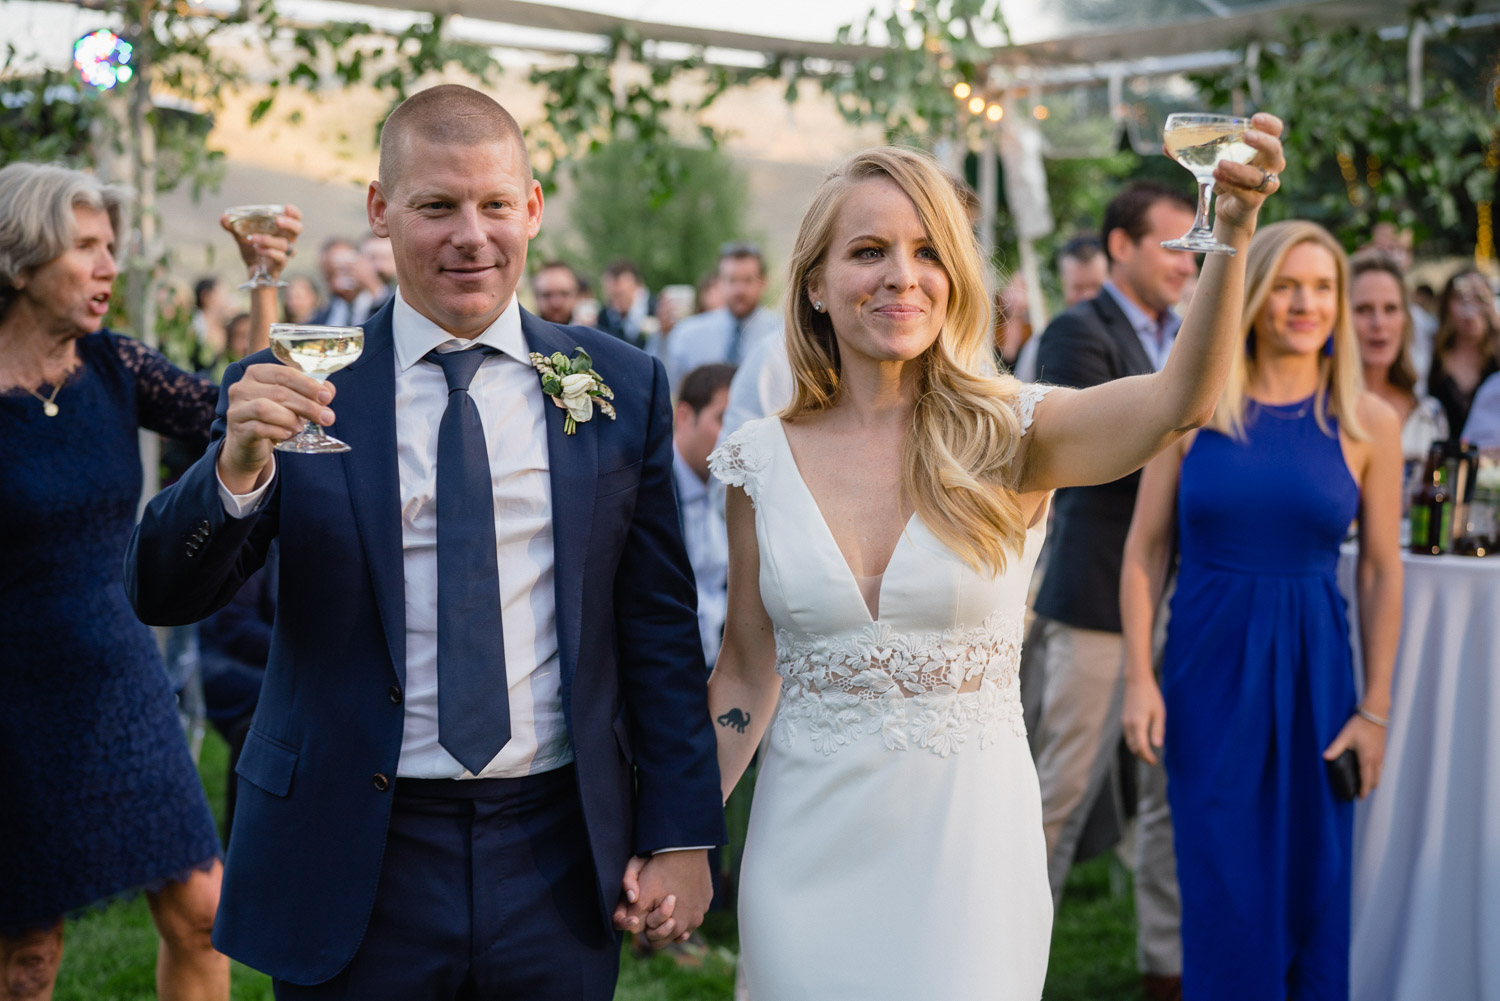 bride and groom raise glasses for toast park city wedding